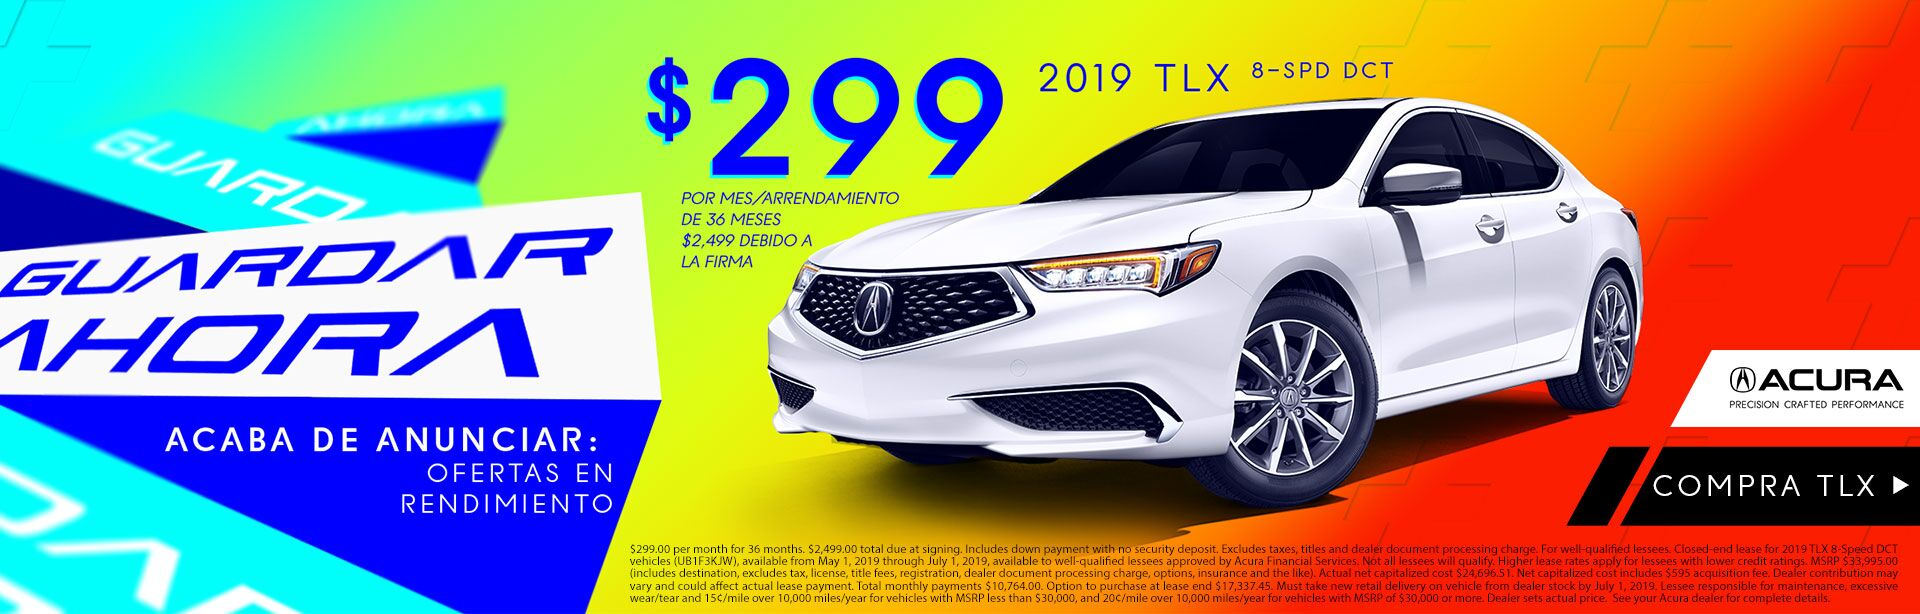 2019 TLX at Acura of Modesto